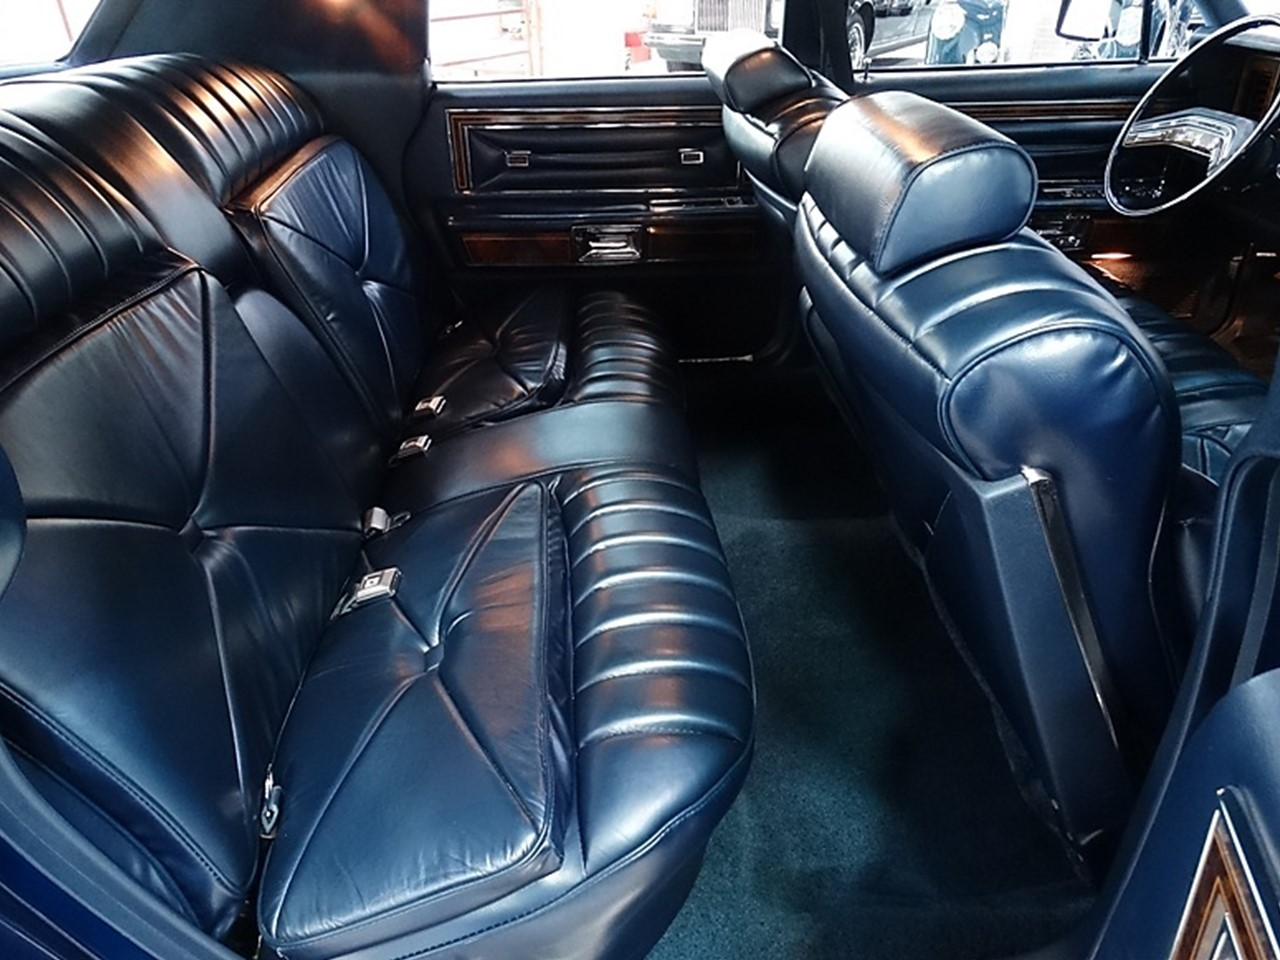 1979 Lincoln Continental Collector's Series 6